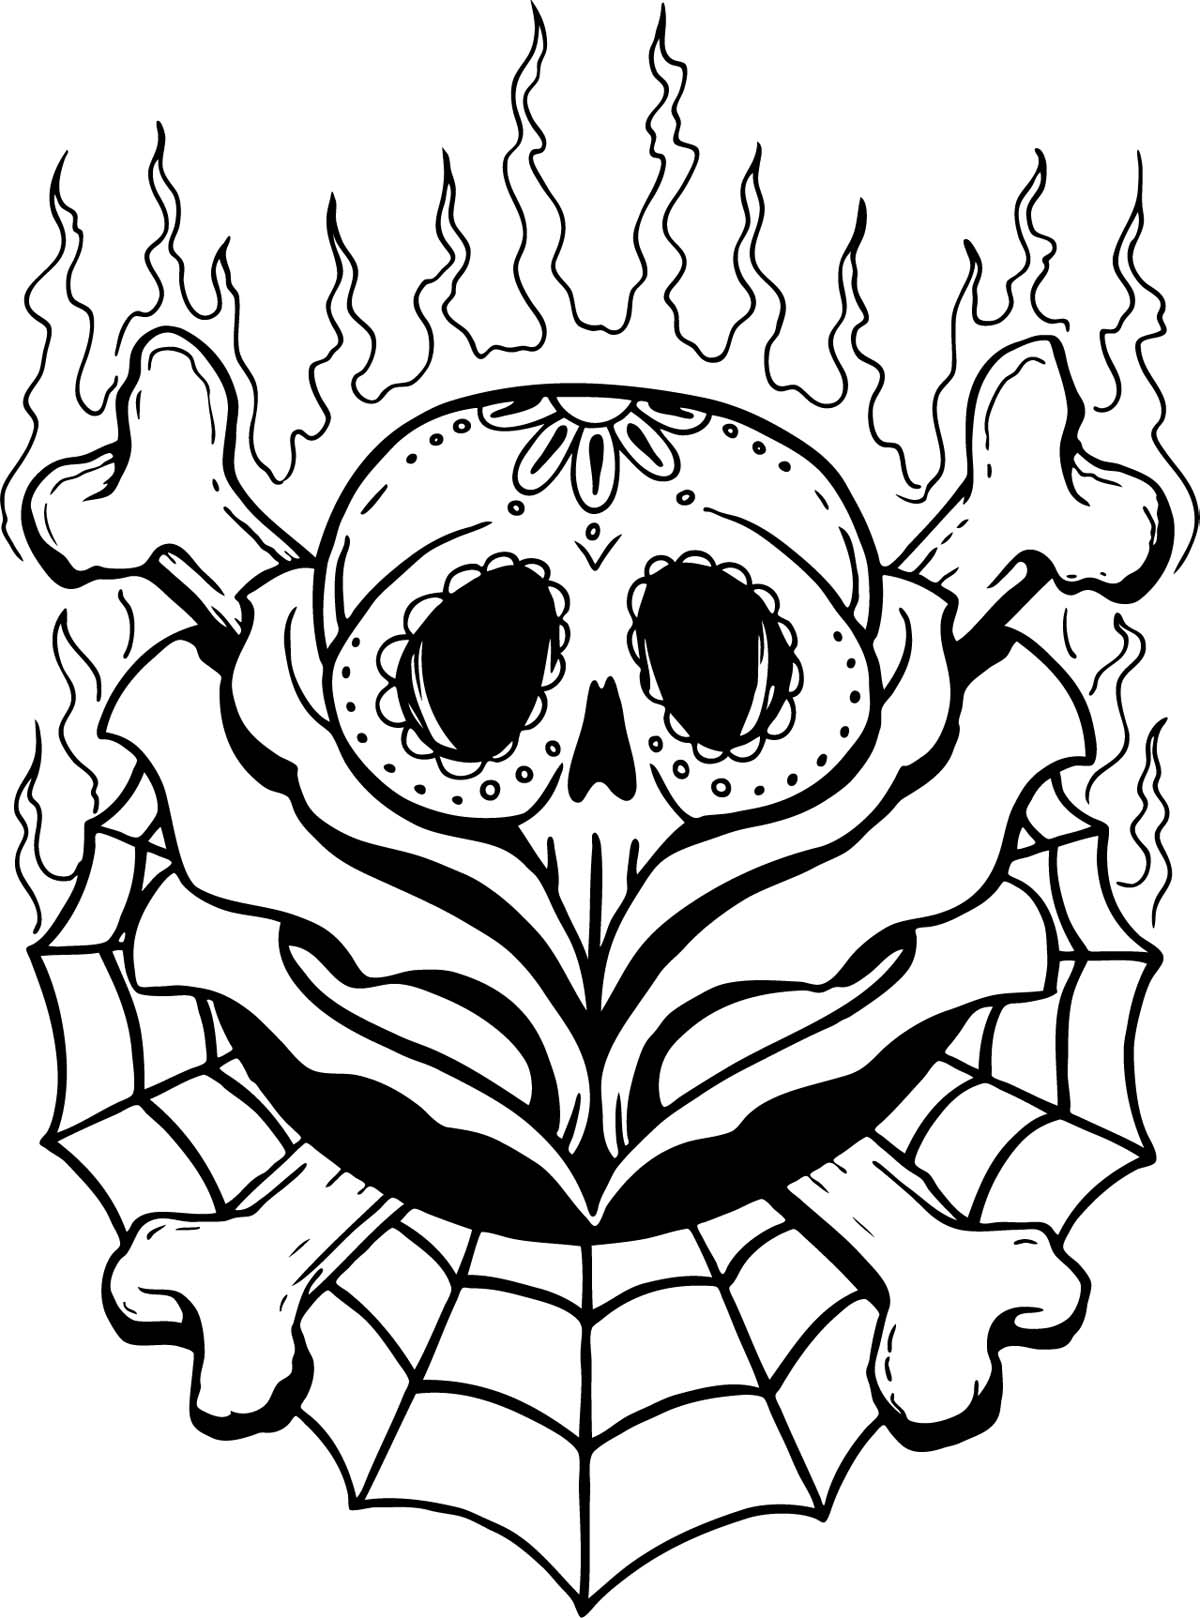 Skull Line Drawing Tattoo : Spider skull rose «line drawing «other «tattoo tattoo